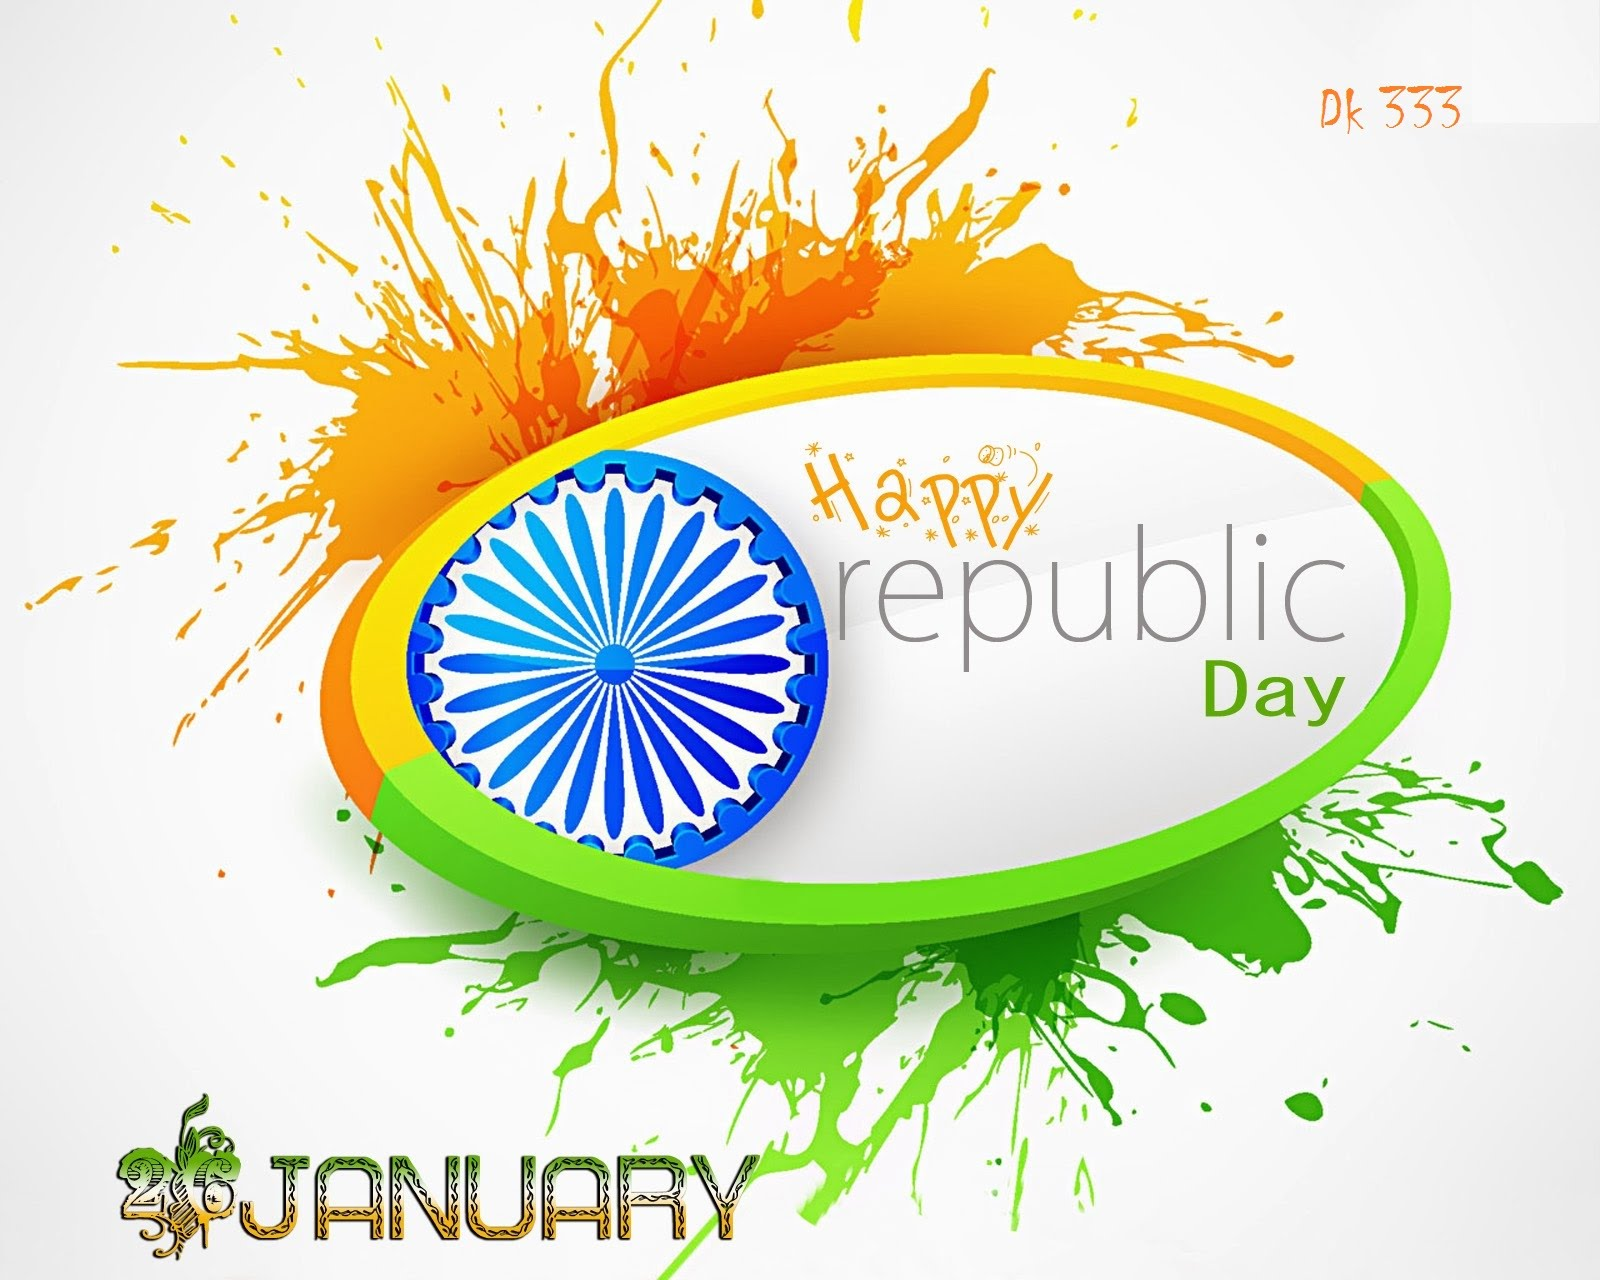 2016 clipart republic day. Hindi poem on indian